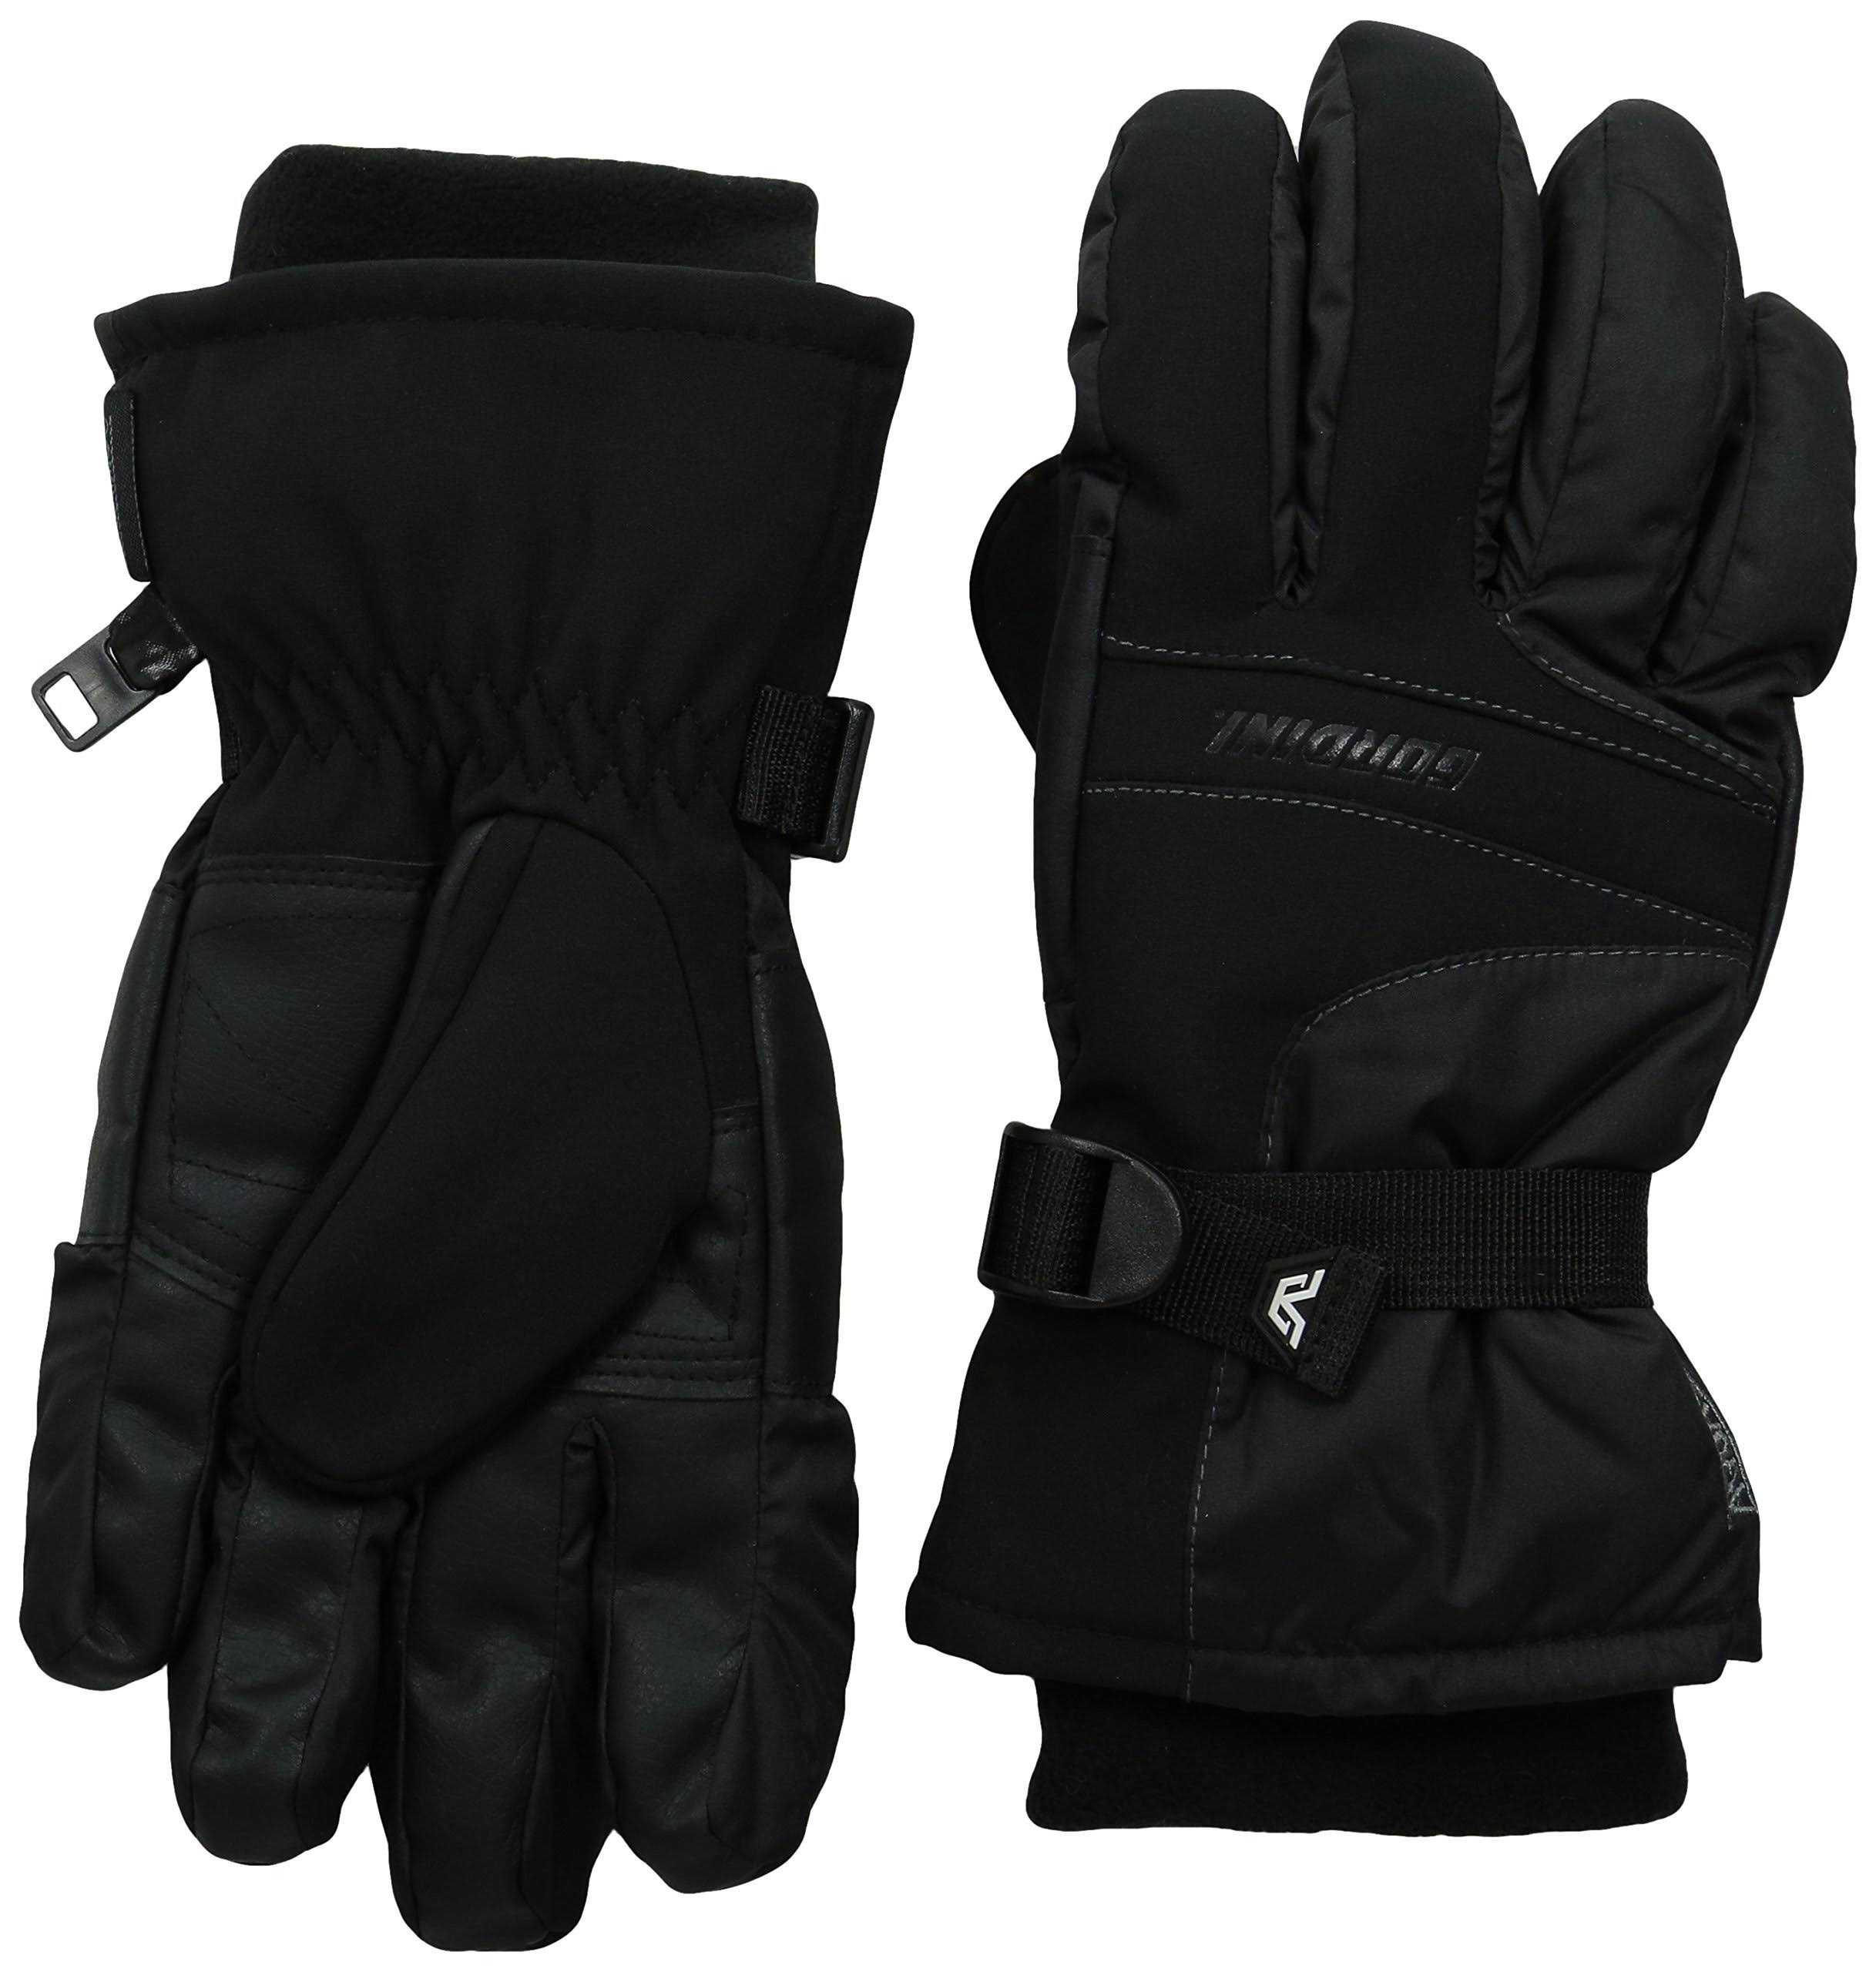 Gordini Women's Aquabloc Viii Gloves - Black, Medium